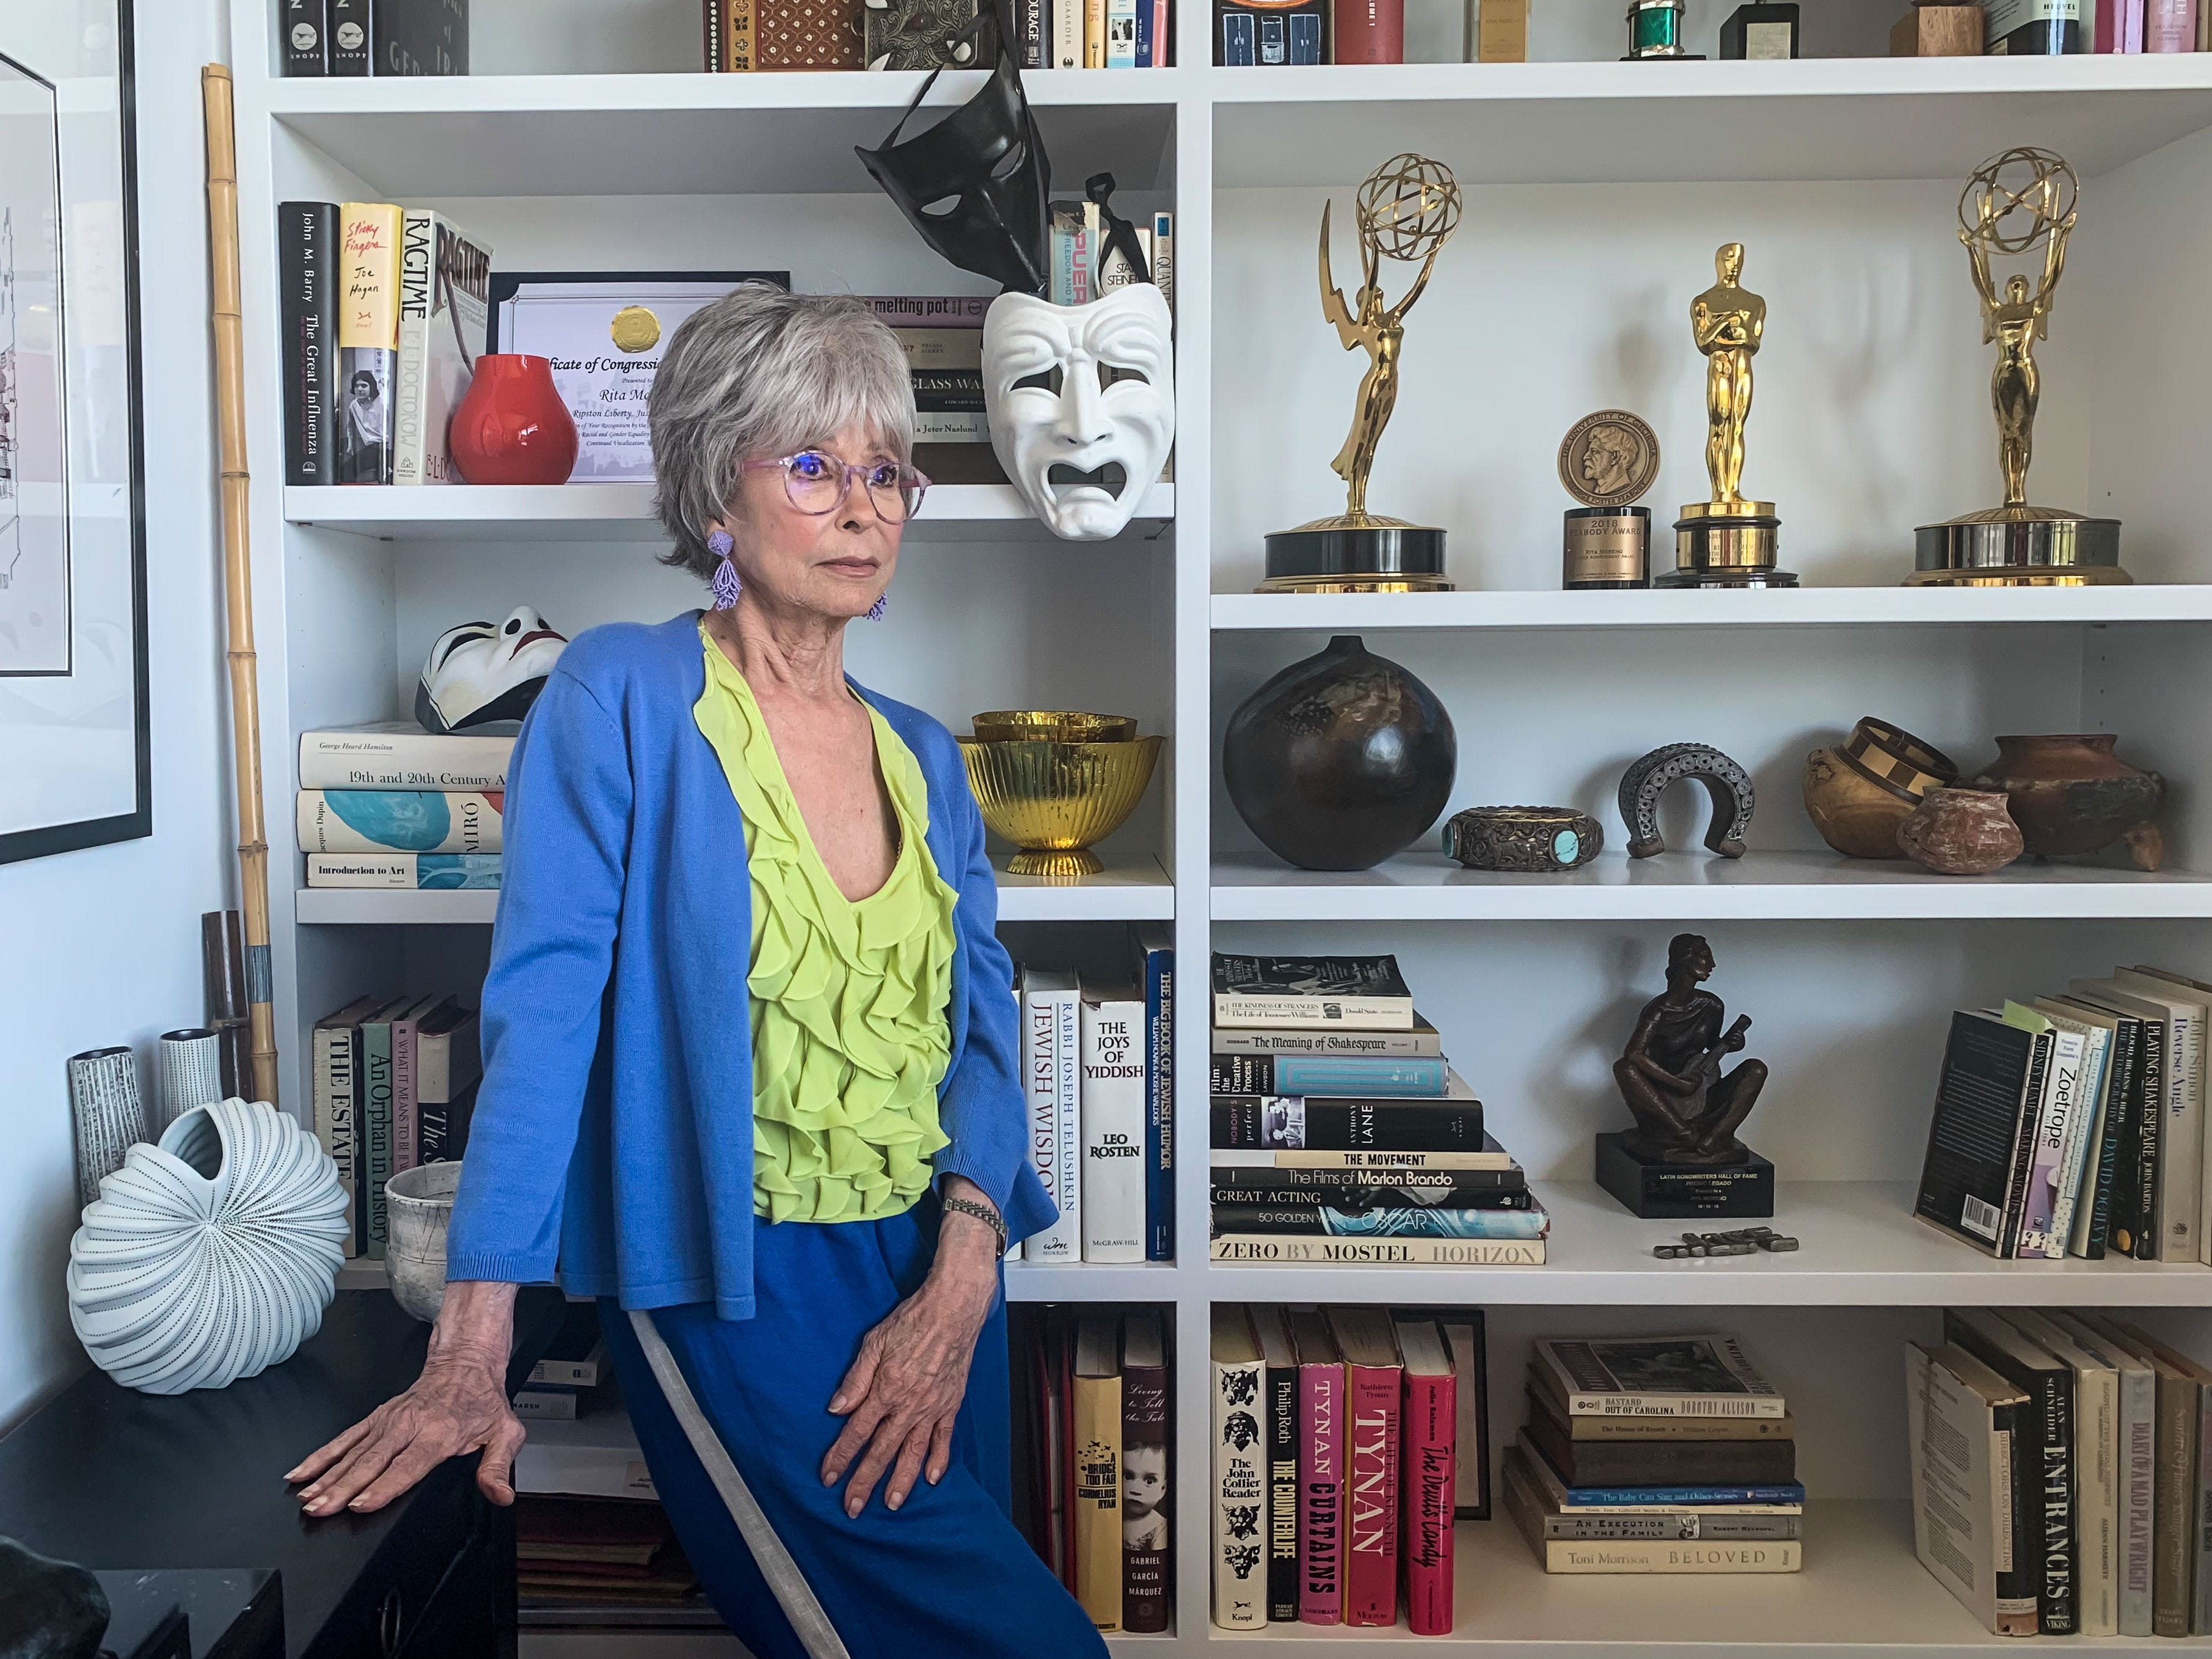 Rita Moreno says being at the March on Washington in 1963 was one of the proudest moments of her life.